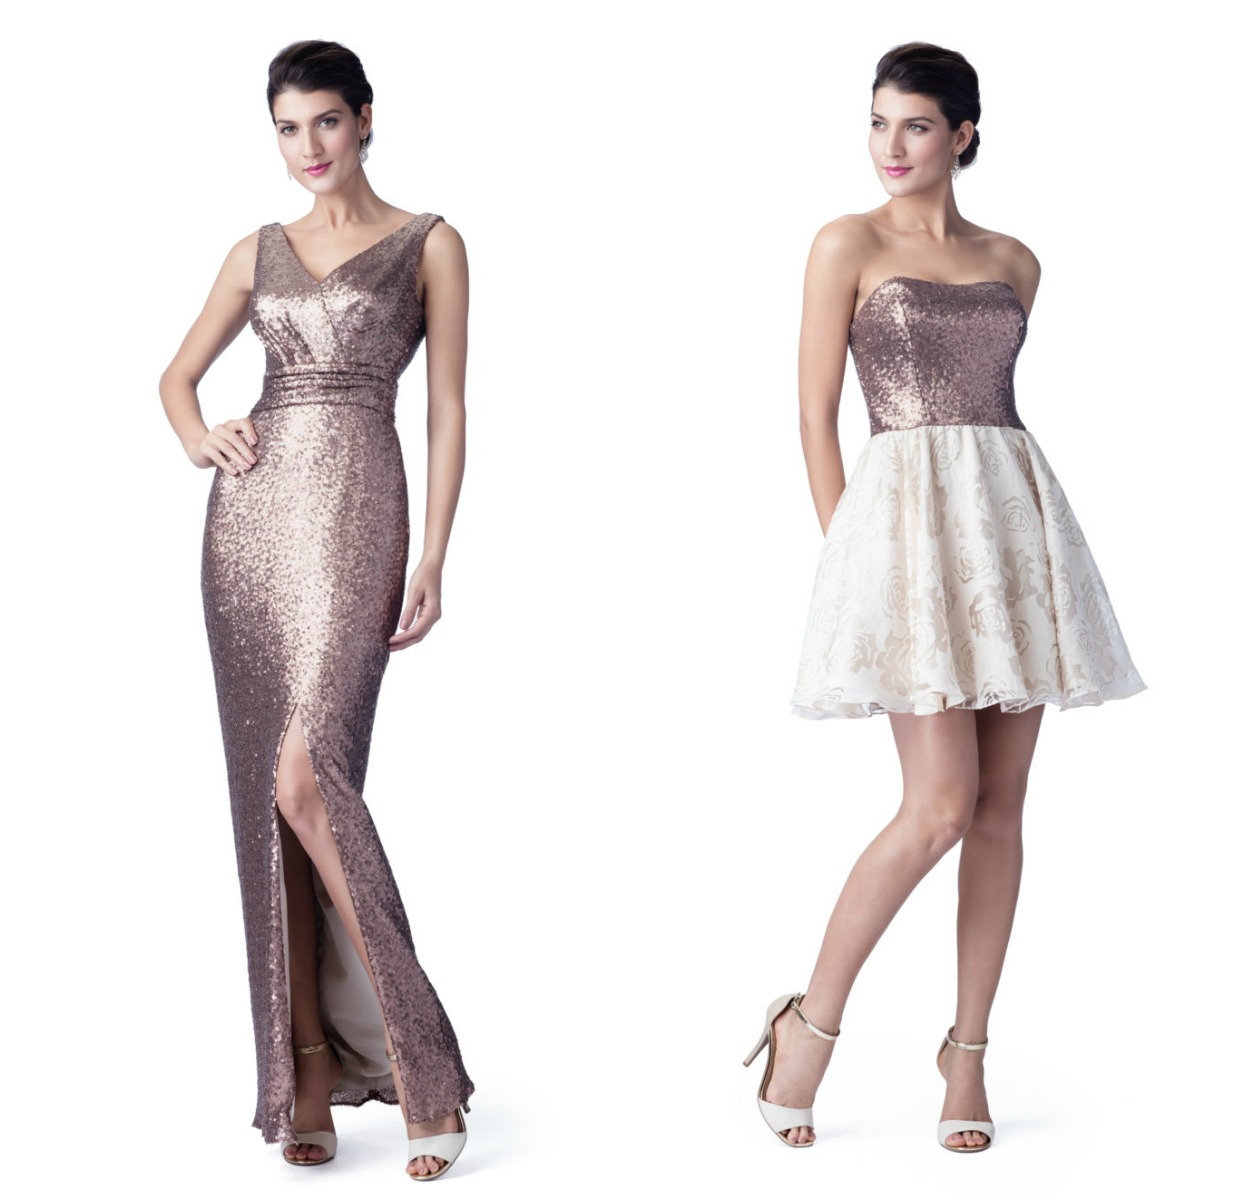 Venus Bridal : Elegant Special Occasion Dresses For All Of